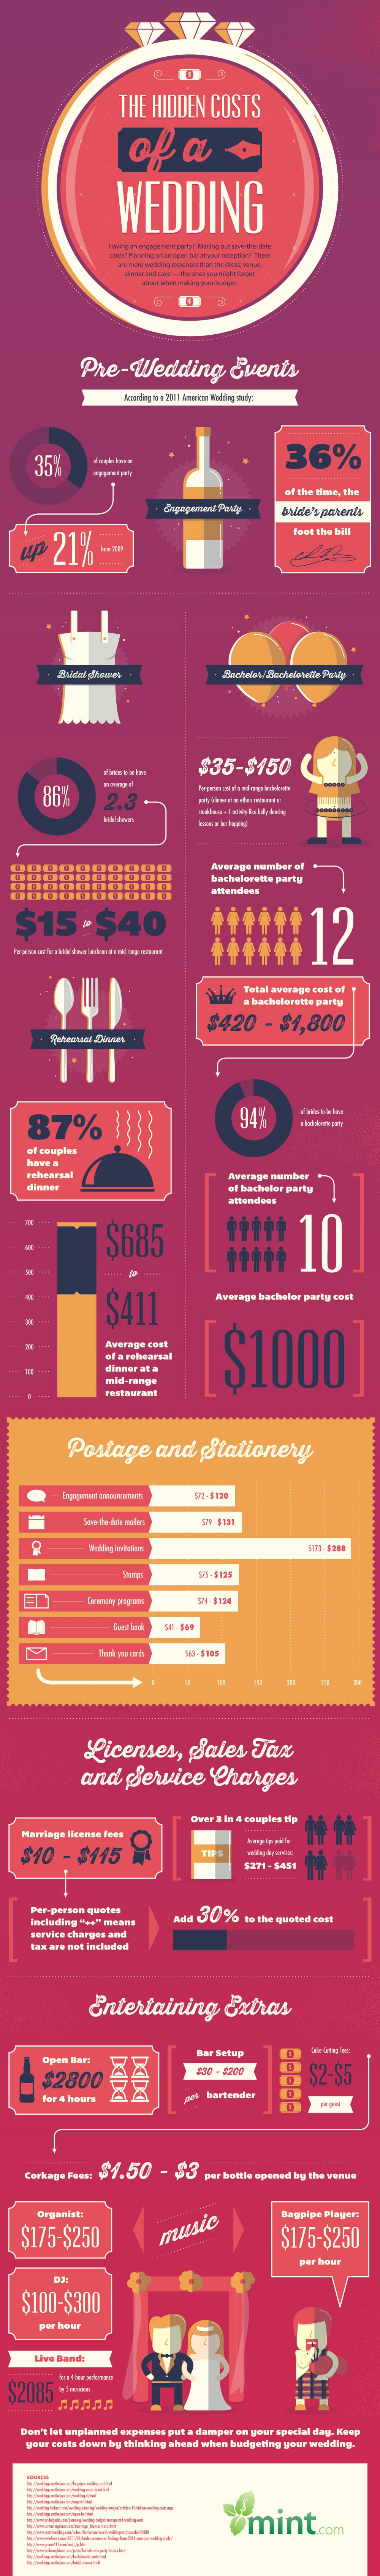 Wedding costs infographic